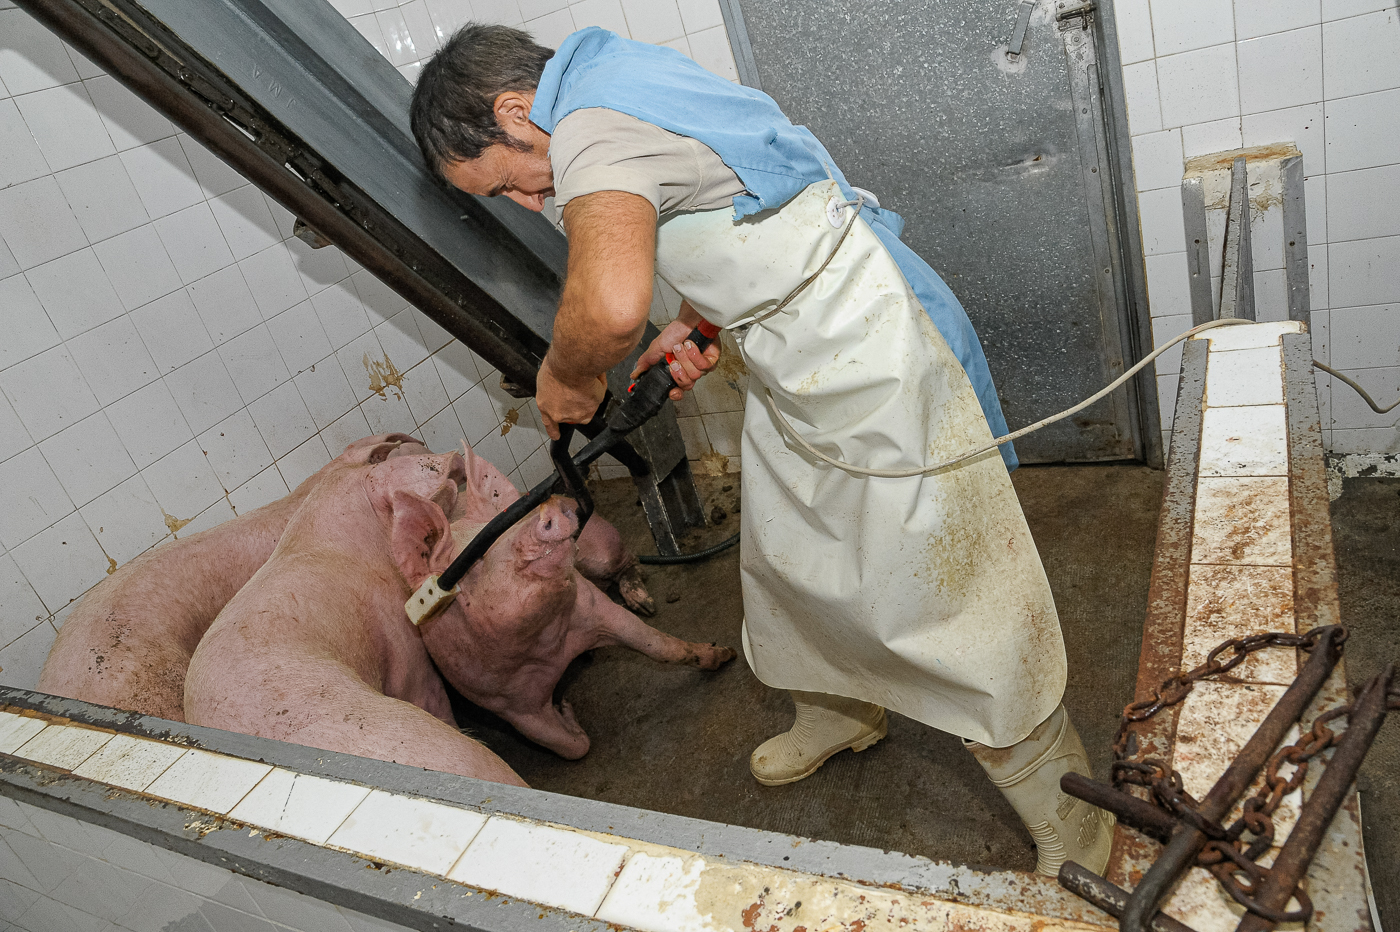 Stunning the pigs was the only time there was a struggle between pig and man